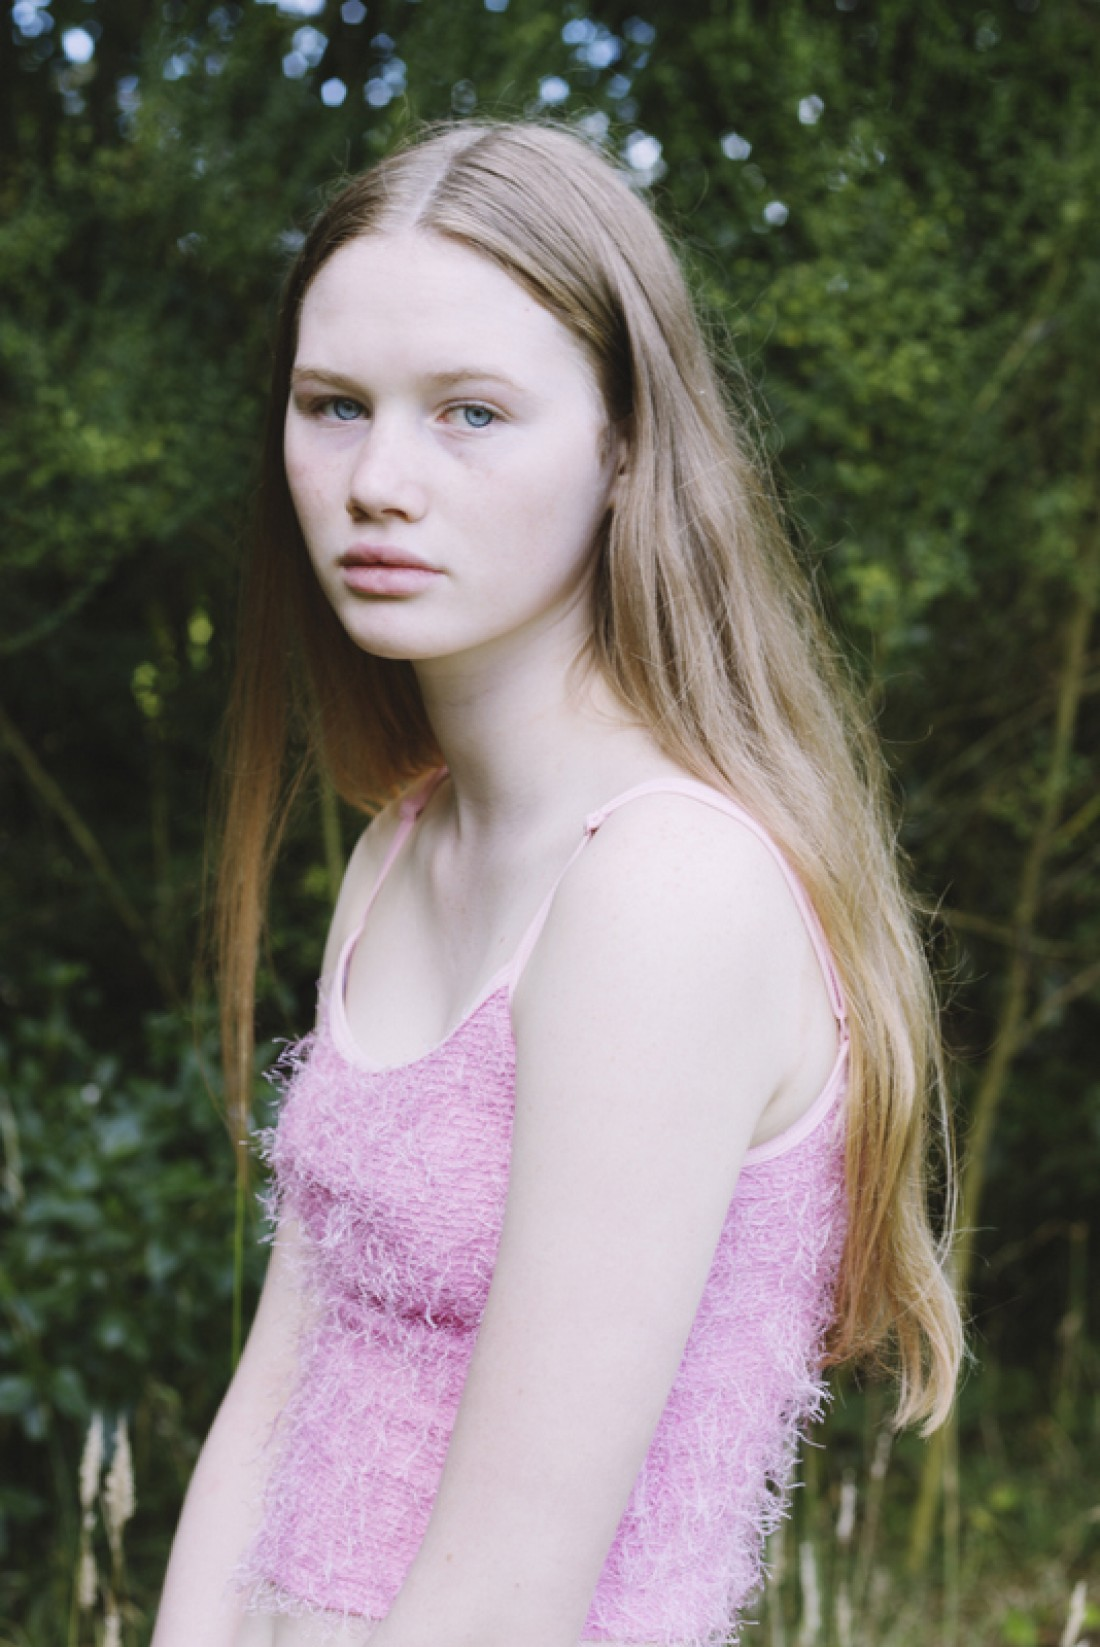 Introducing Milly: shot by Connie MacDonald